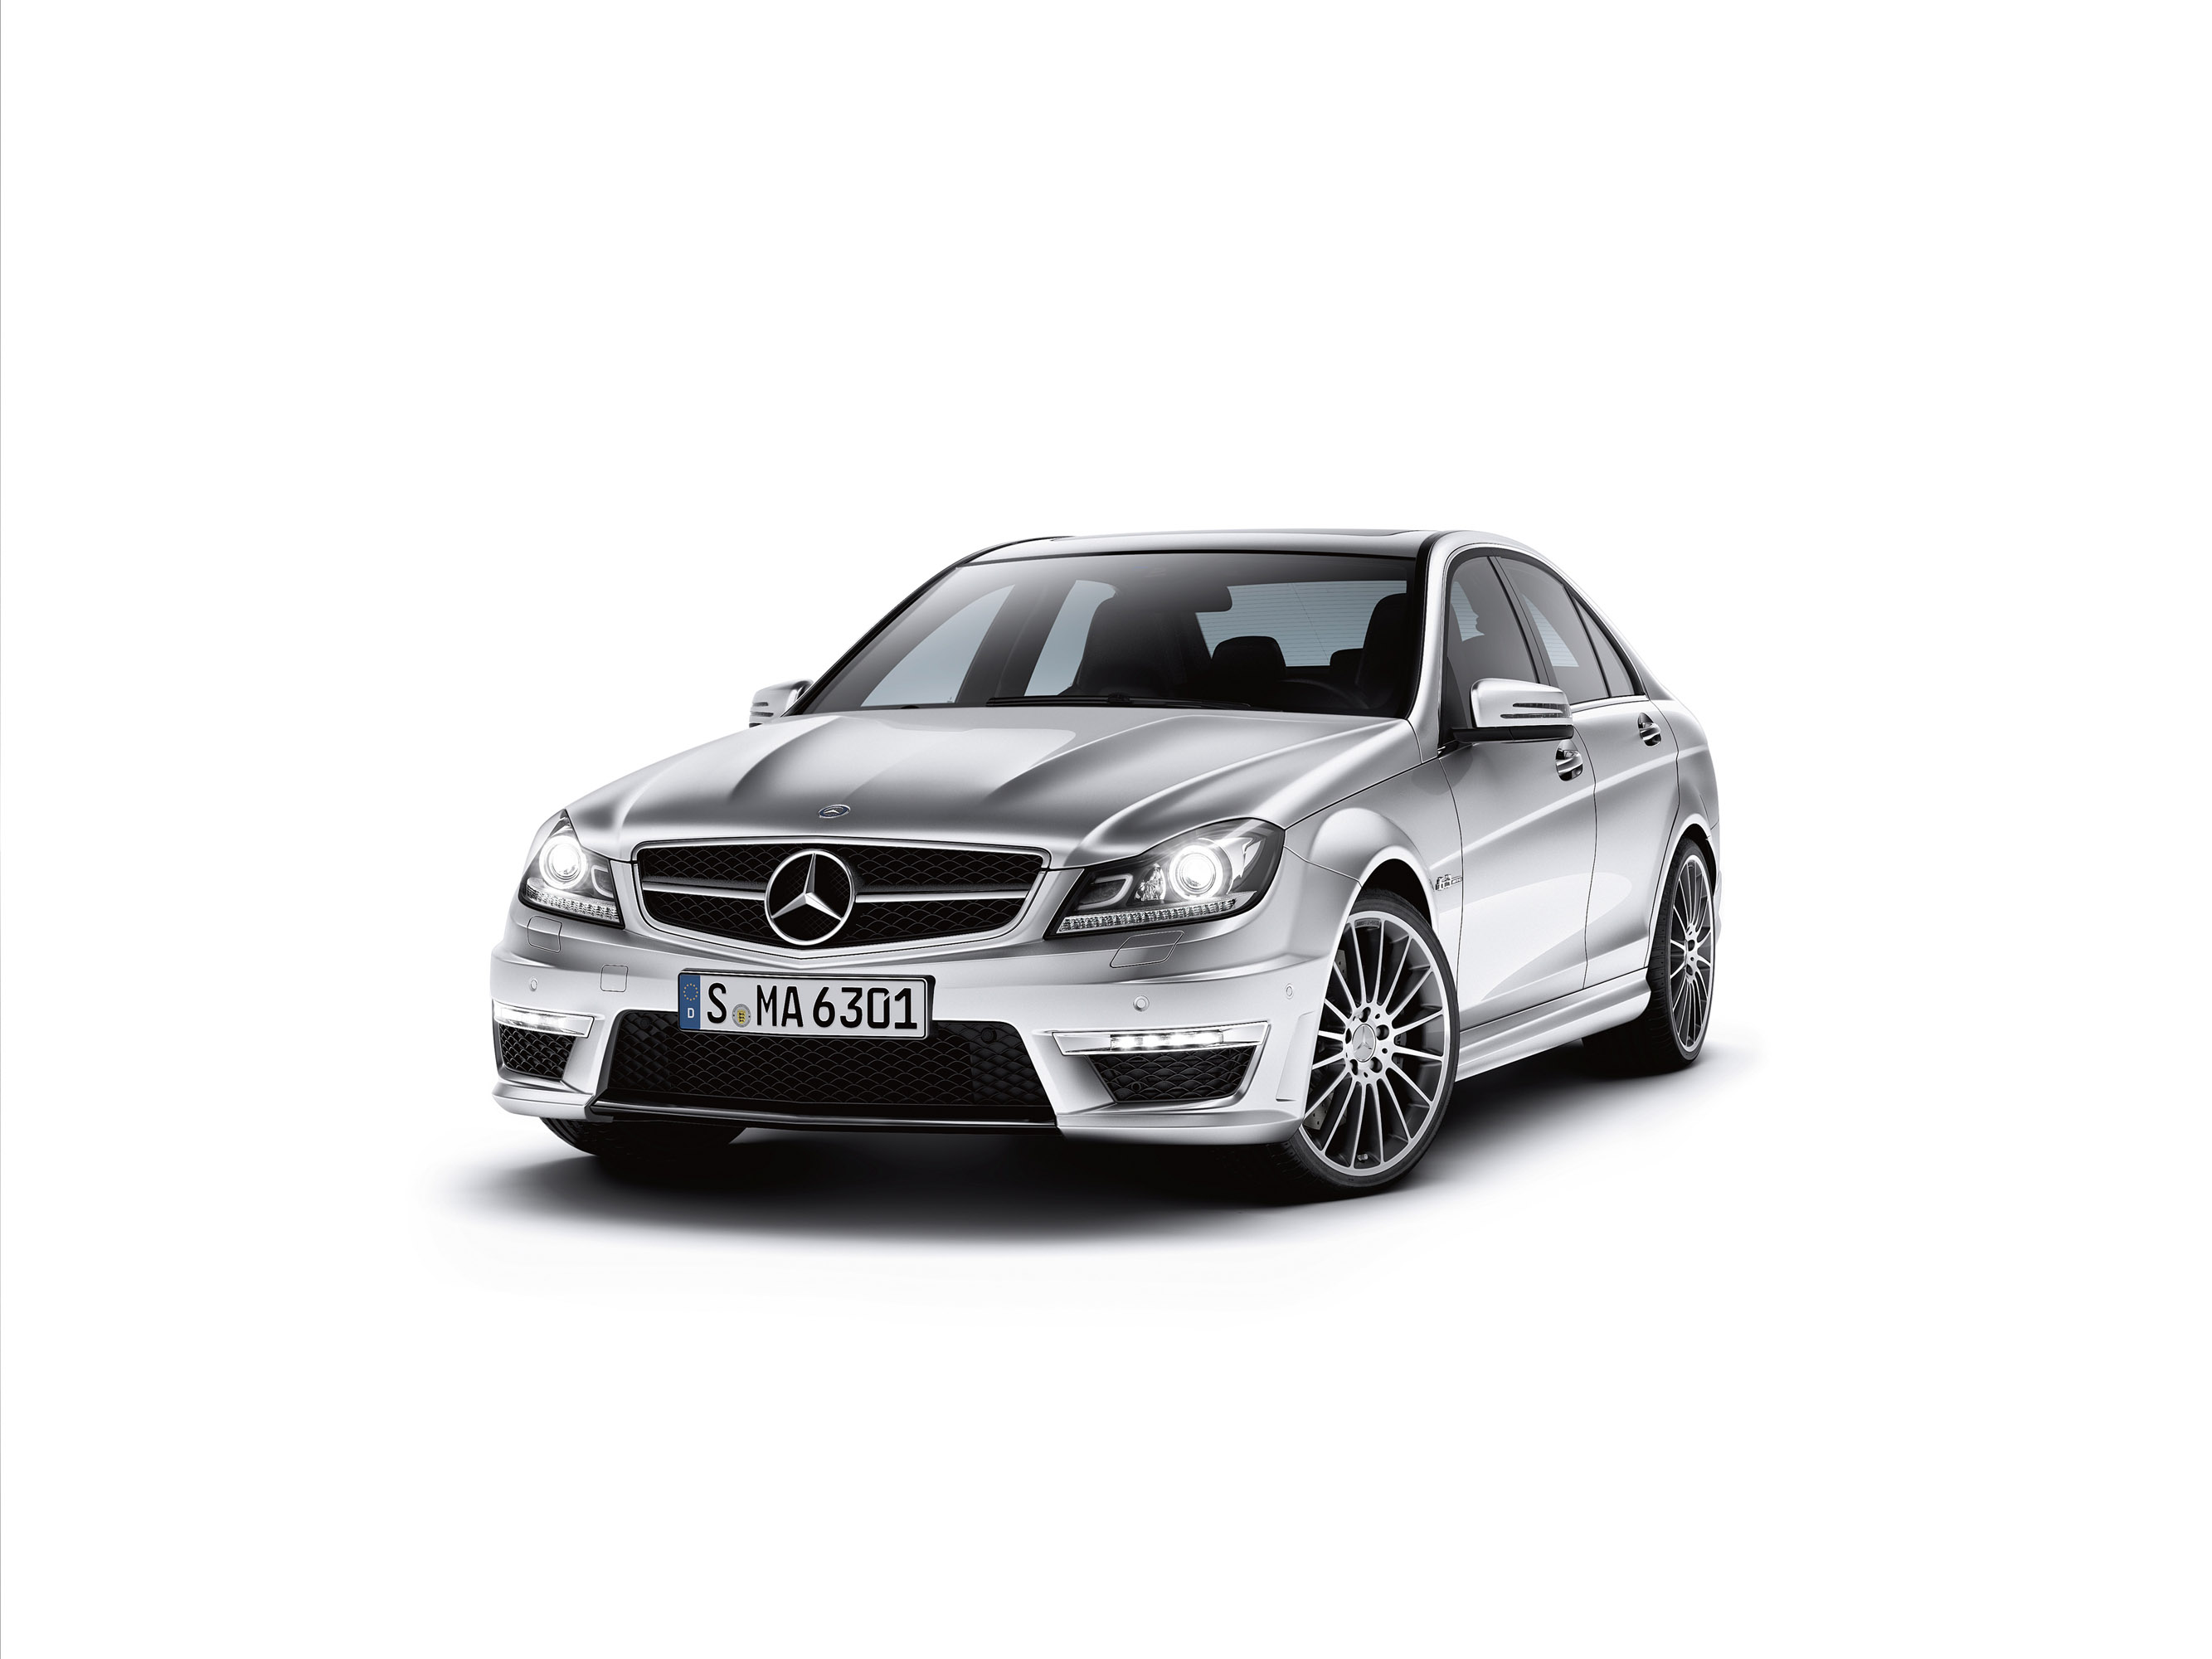 2013 Mercedes Benz C Class Welcomes 1 6 Engine To The Family